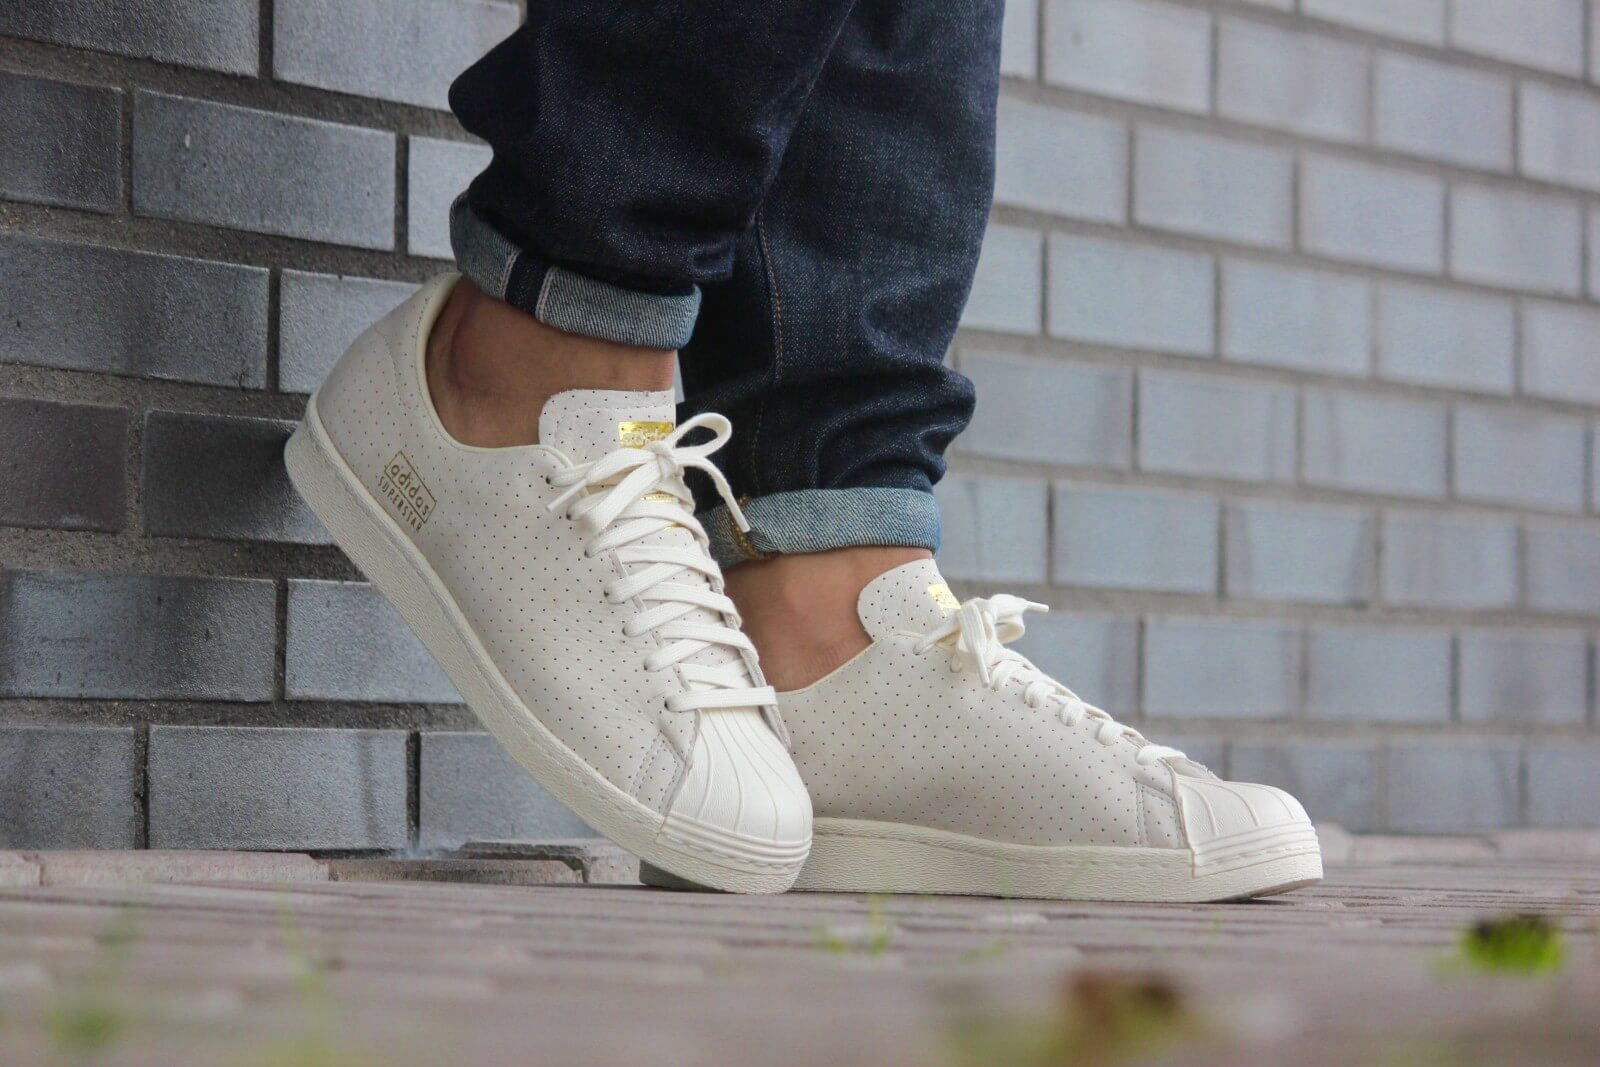 50 100 Adidas Superstar 80's Clean White/ Gold - S32025